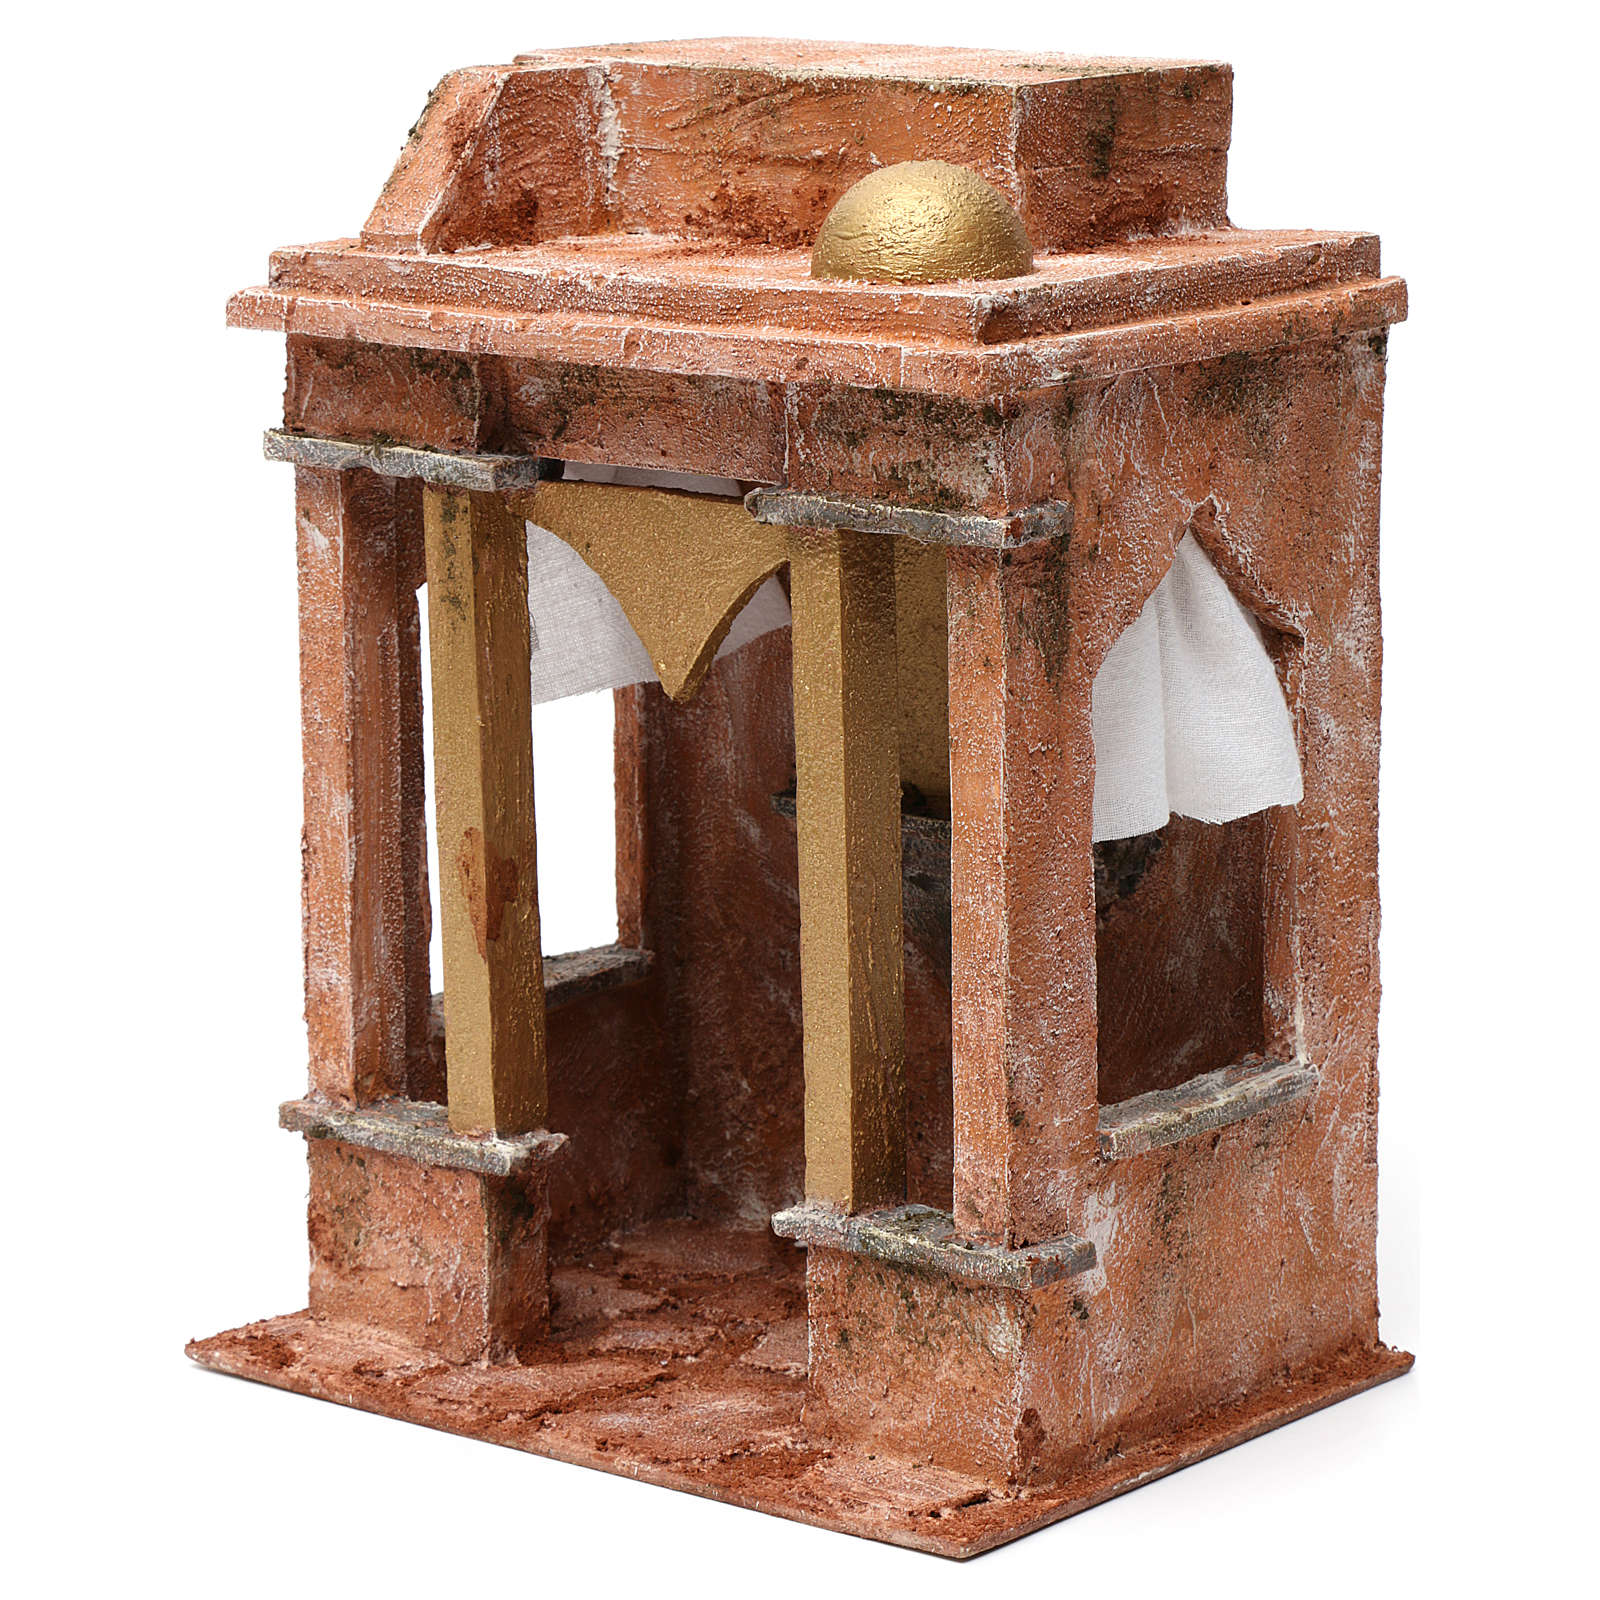 Arab House Scene with small cupola side curtains and columns for 12 cm nativity 30X20X25 4